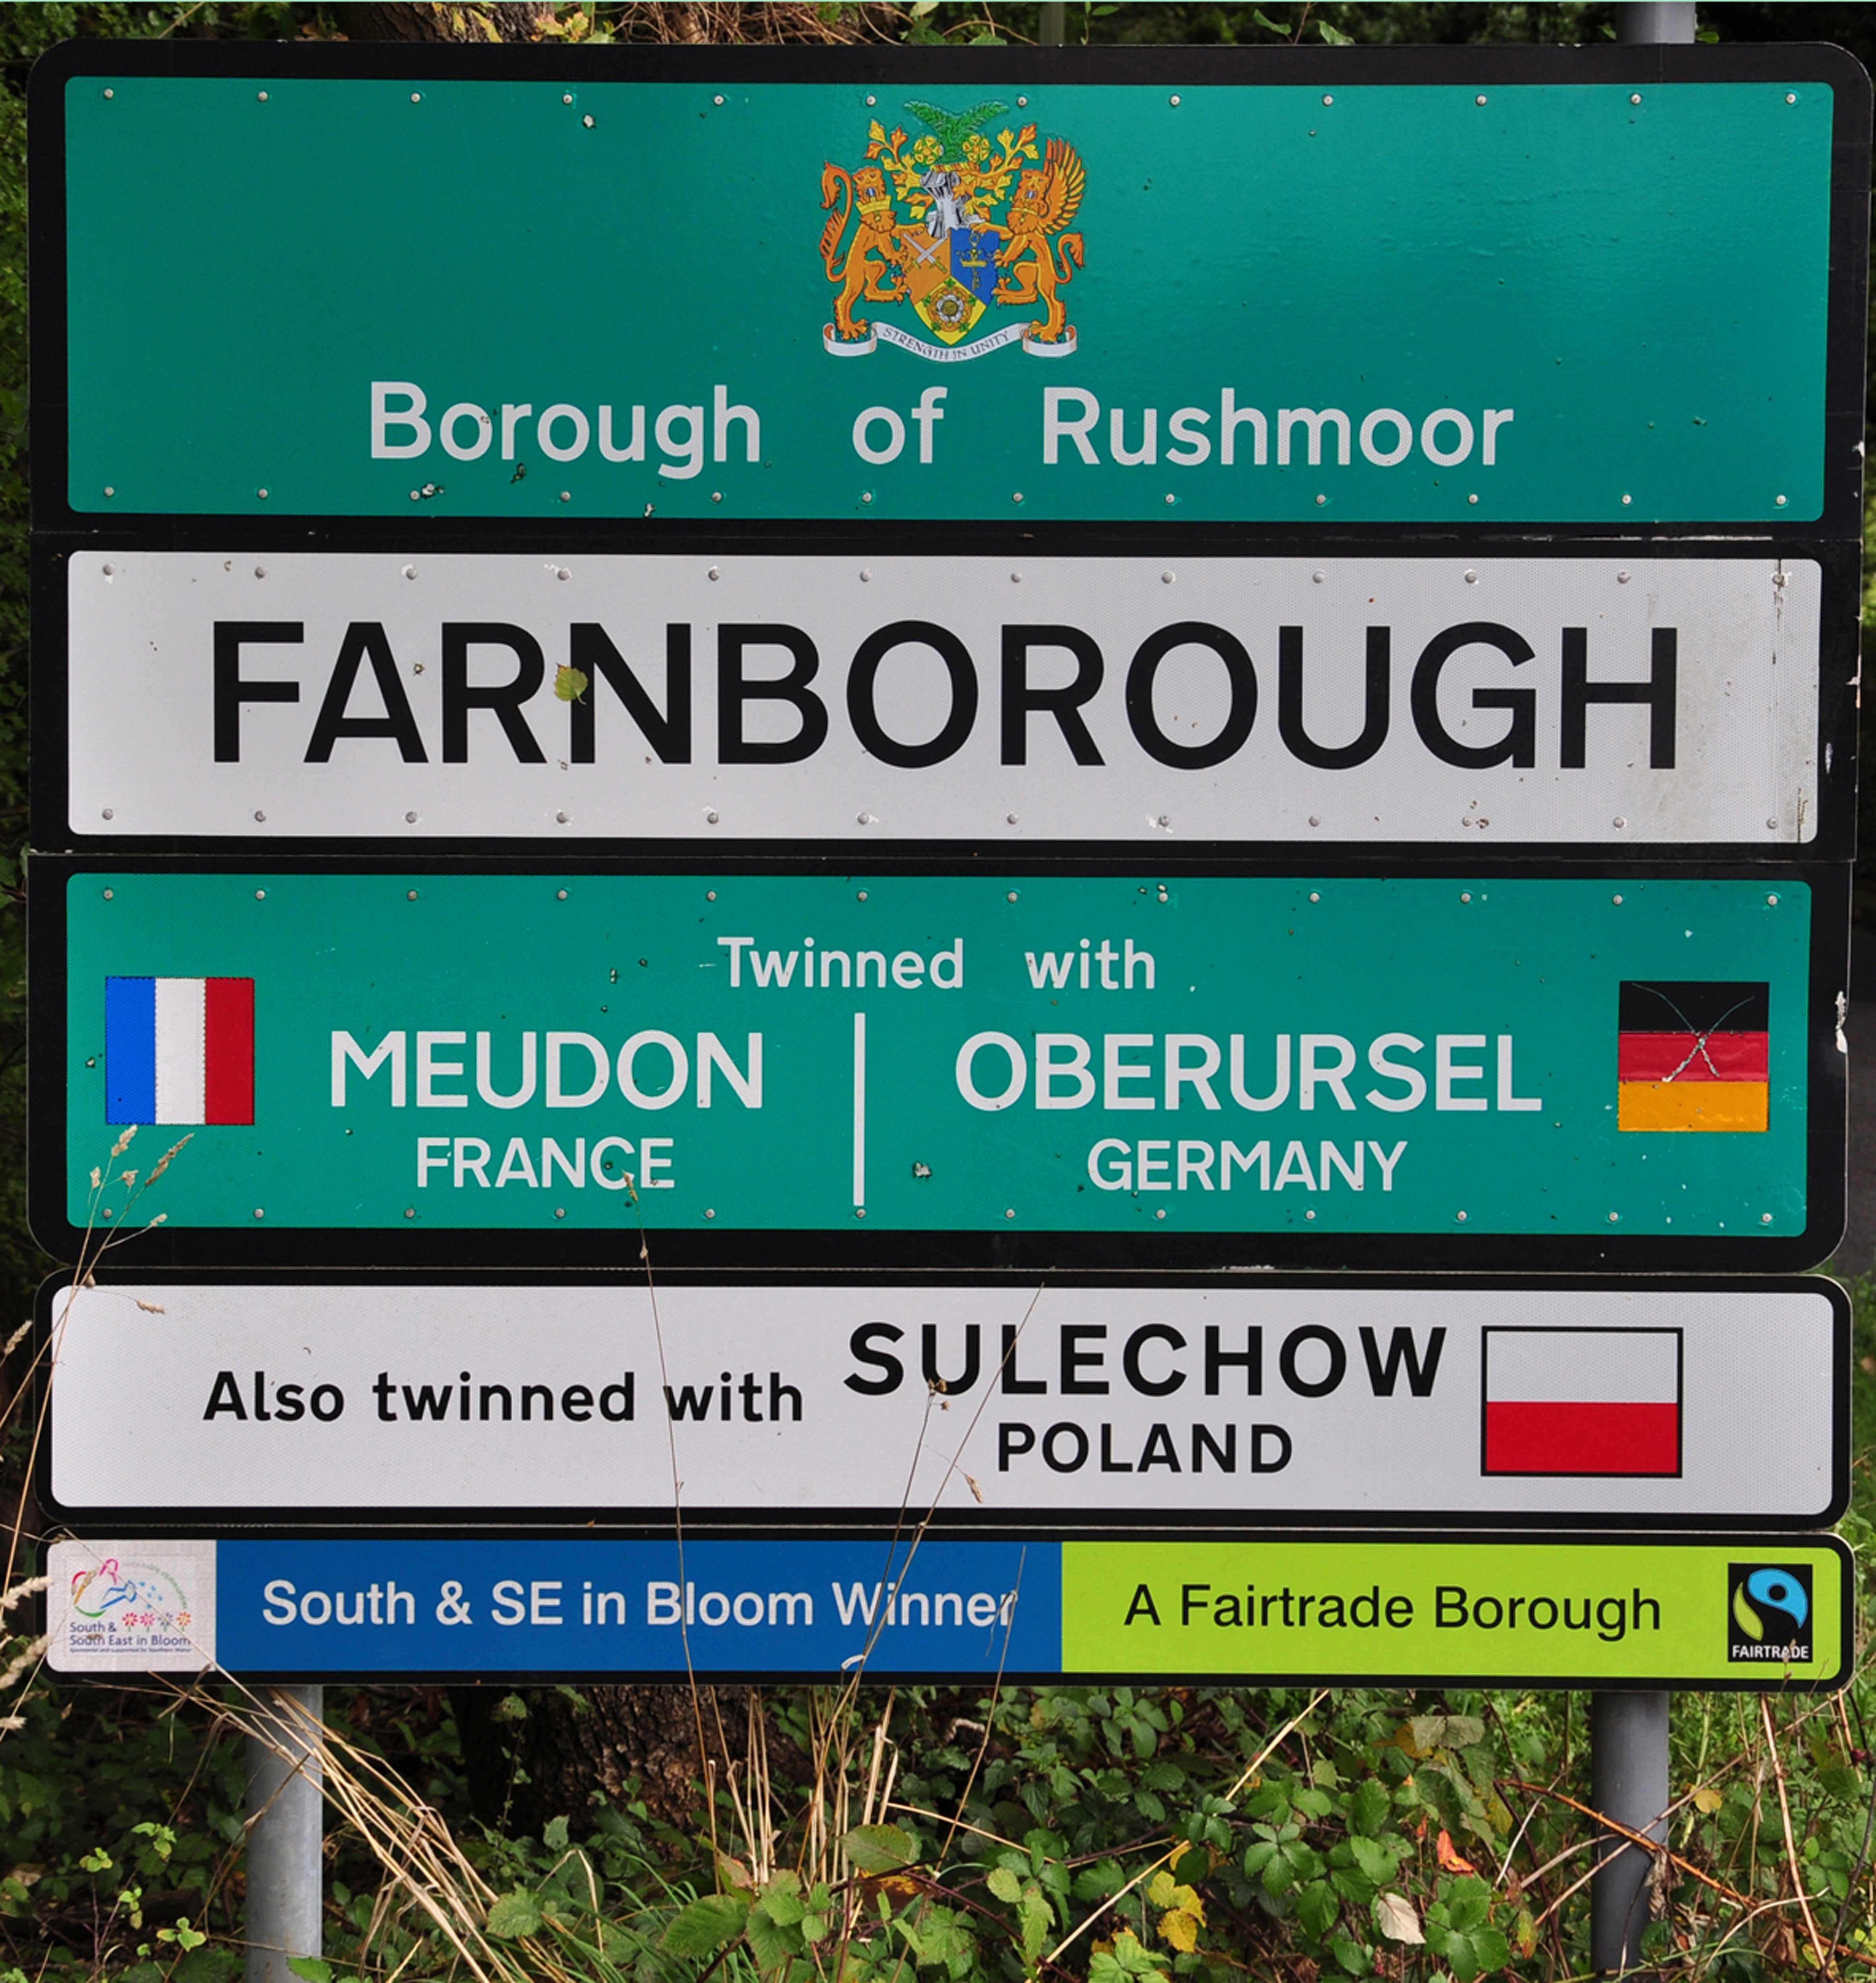 Farnborough Ortsschild 2 40x42.jpg